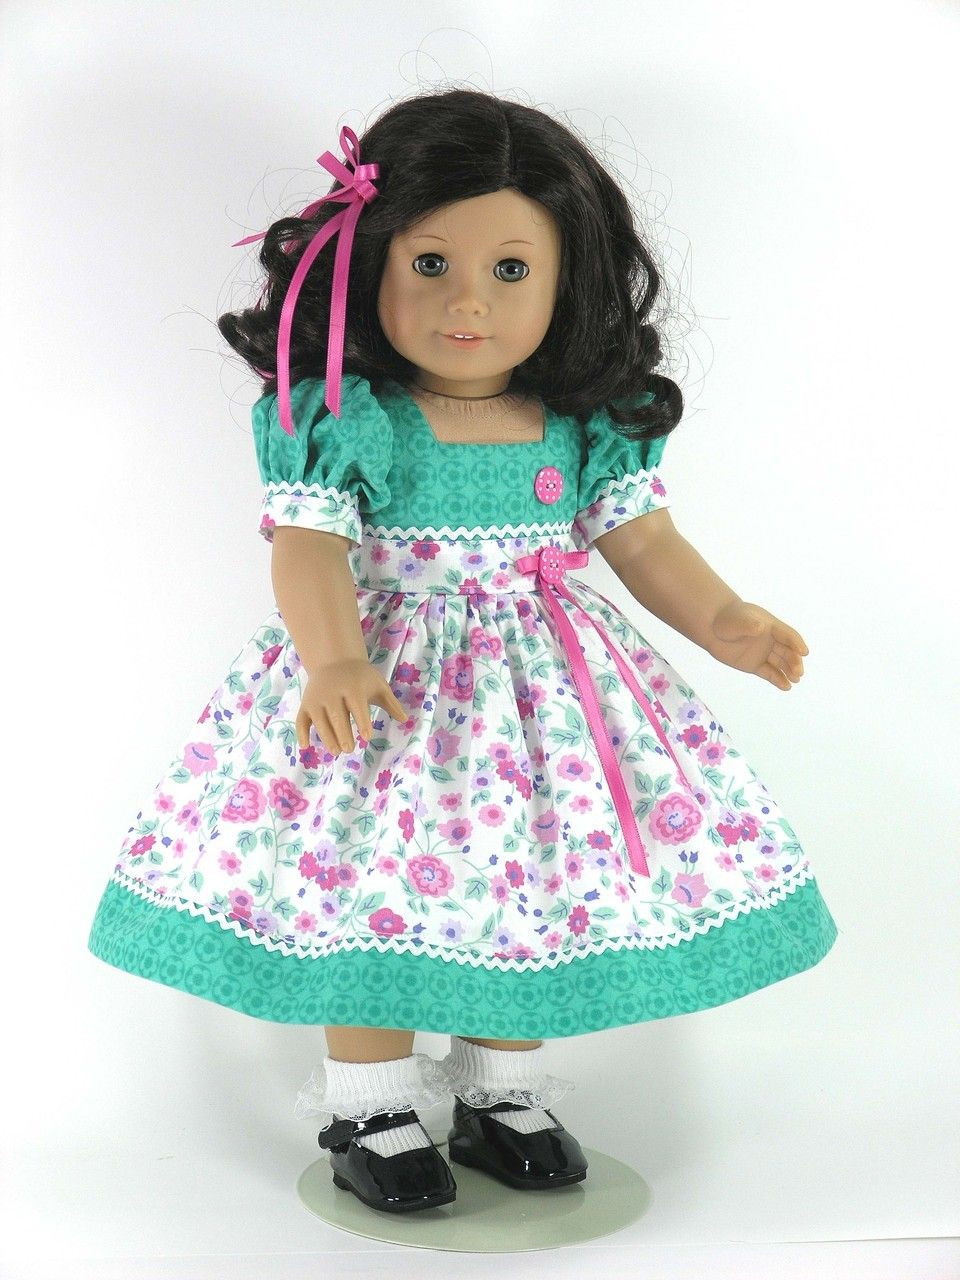 Handmade American Girl Doll Dress - Green, Rose Pink Floral ...